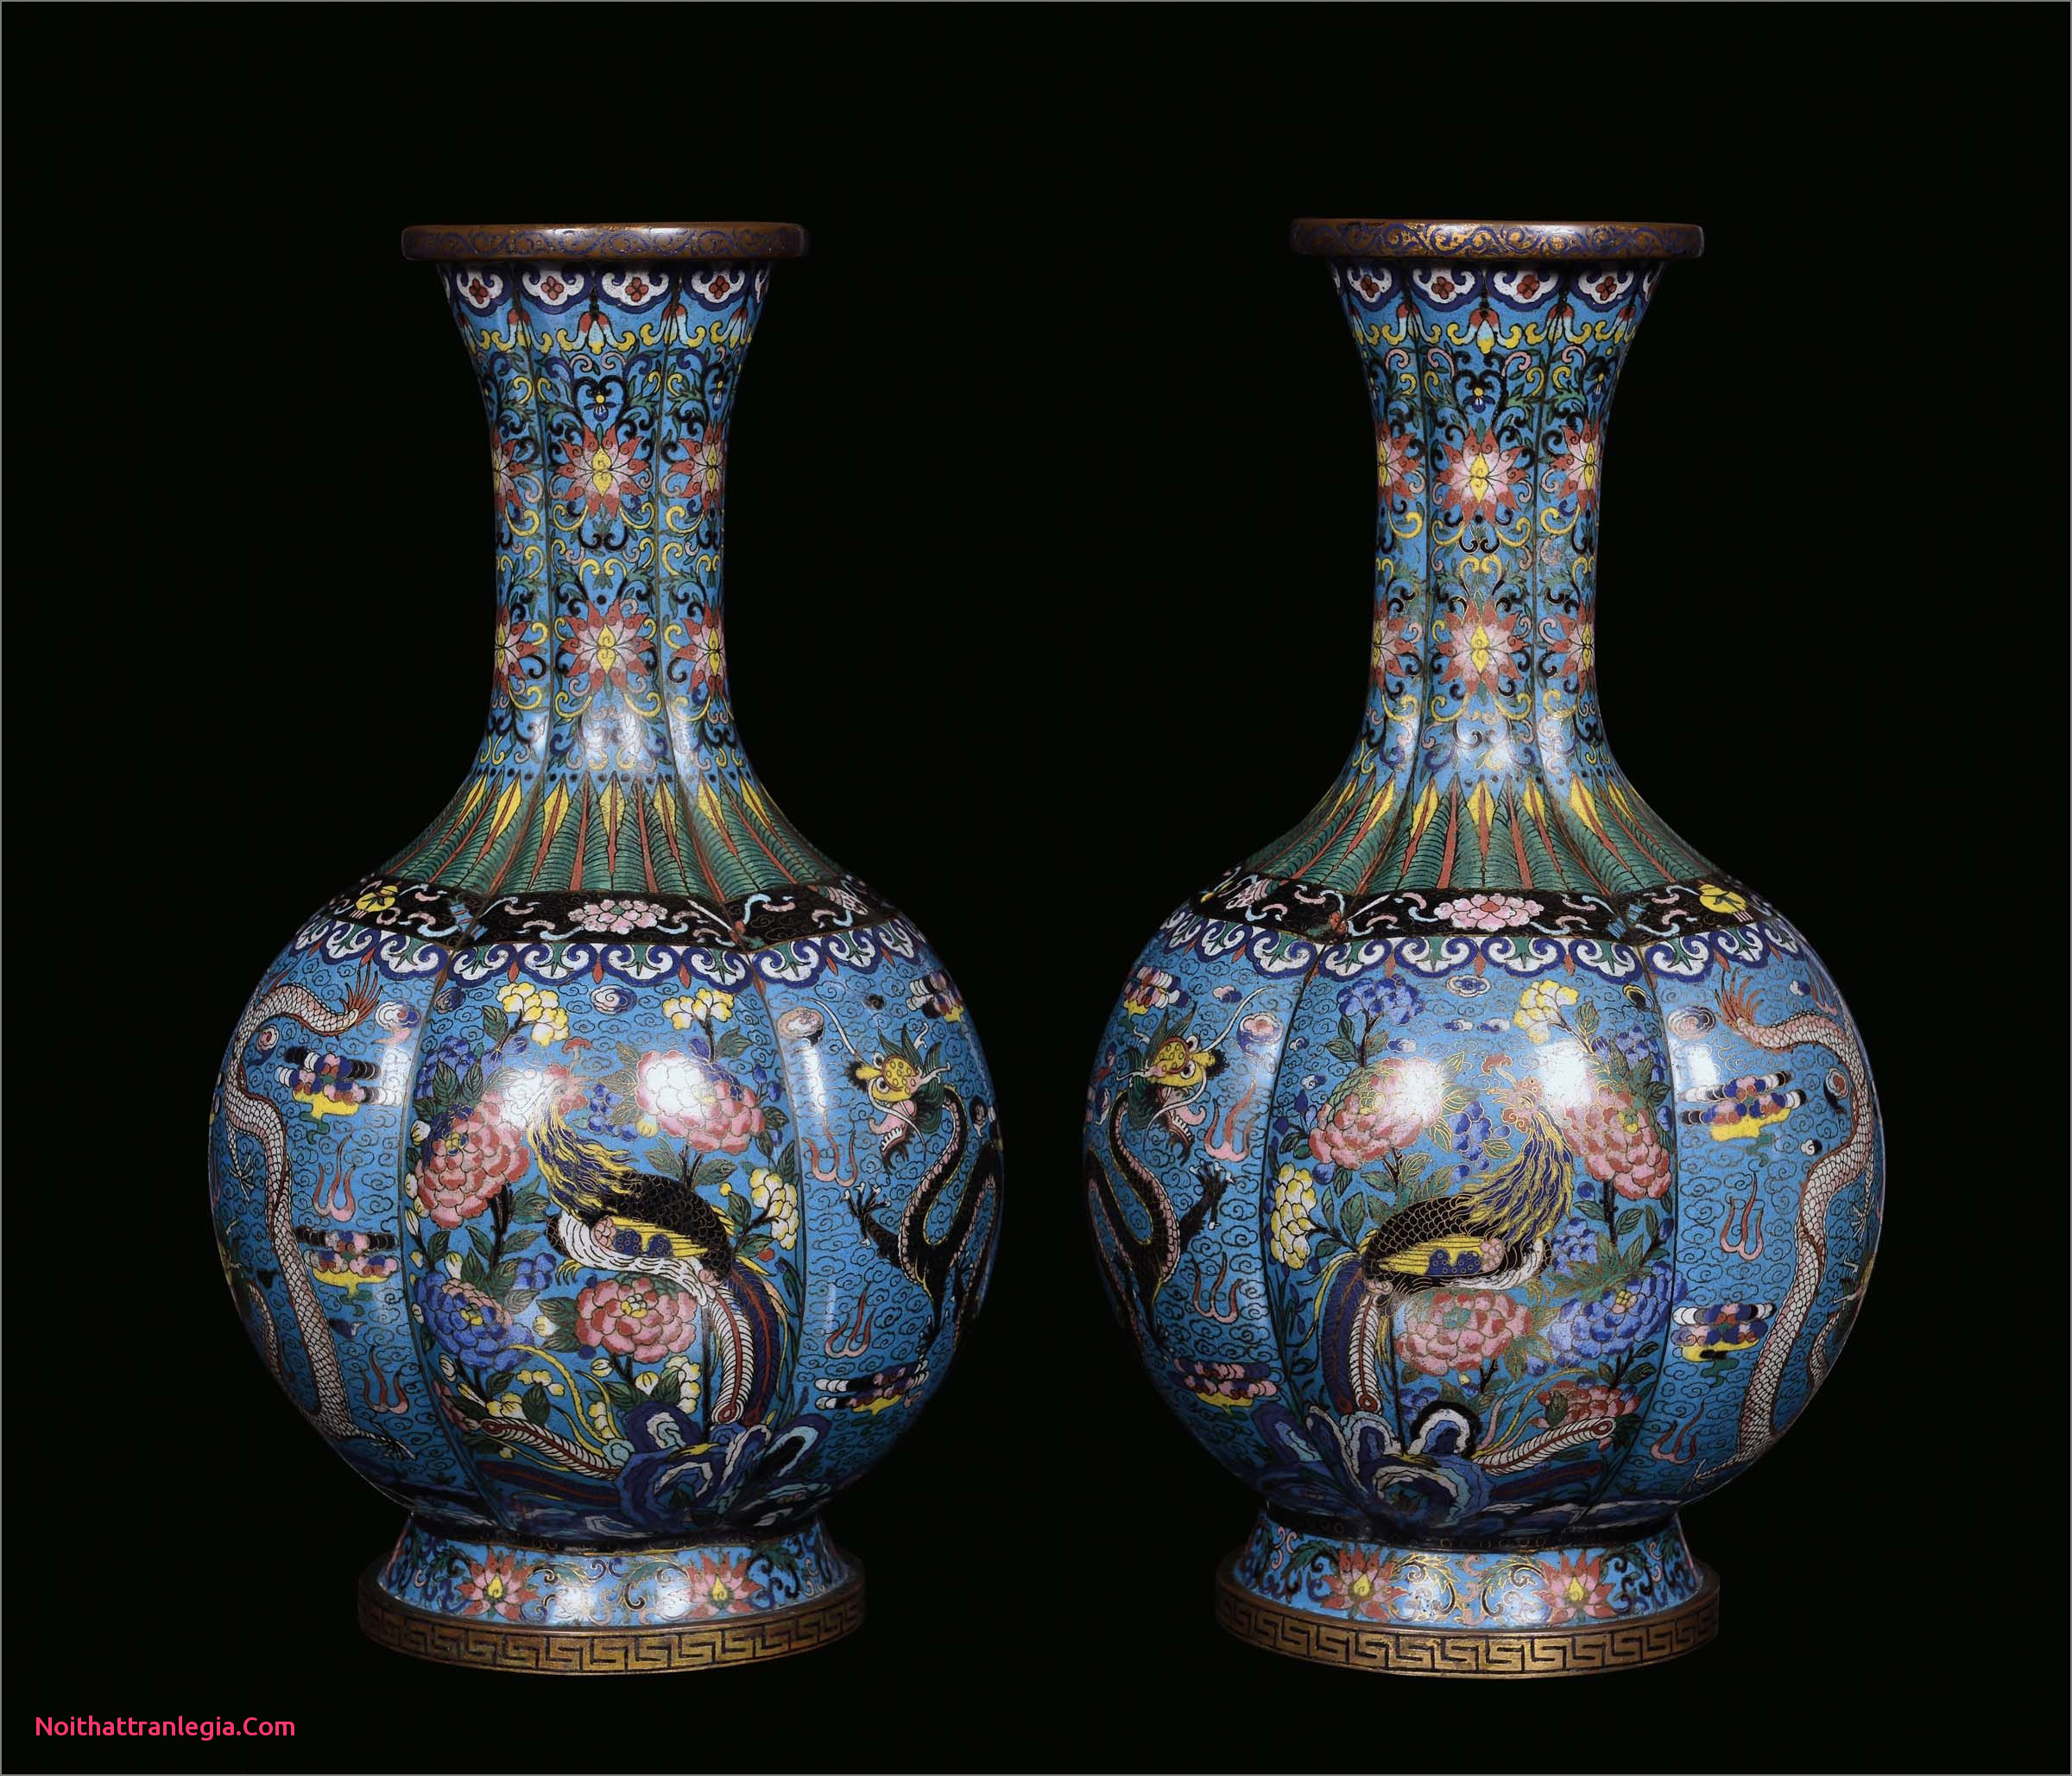 15 Great Vintage Japanese Bronze Vase 2021 free download vintage japanese bronze vase of 20 chinese antique vase noithattranlegia vases design for a pair of cloisonna vases with naturalistic decoration china qing dynasty guangxu period